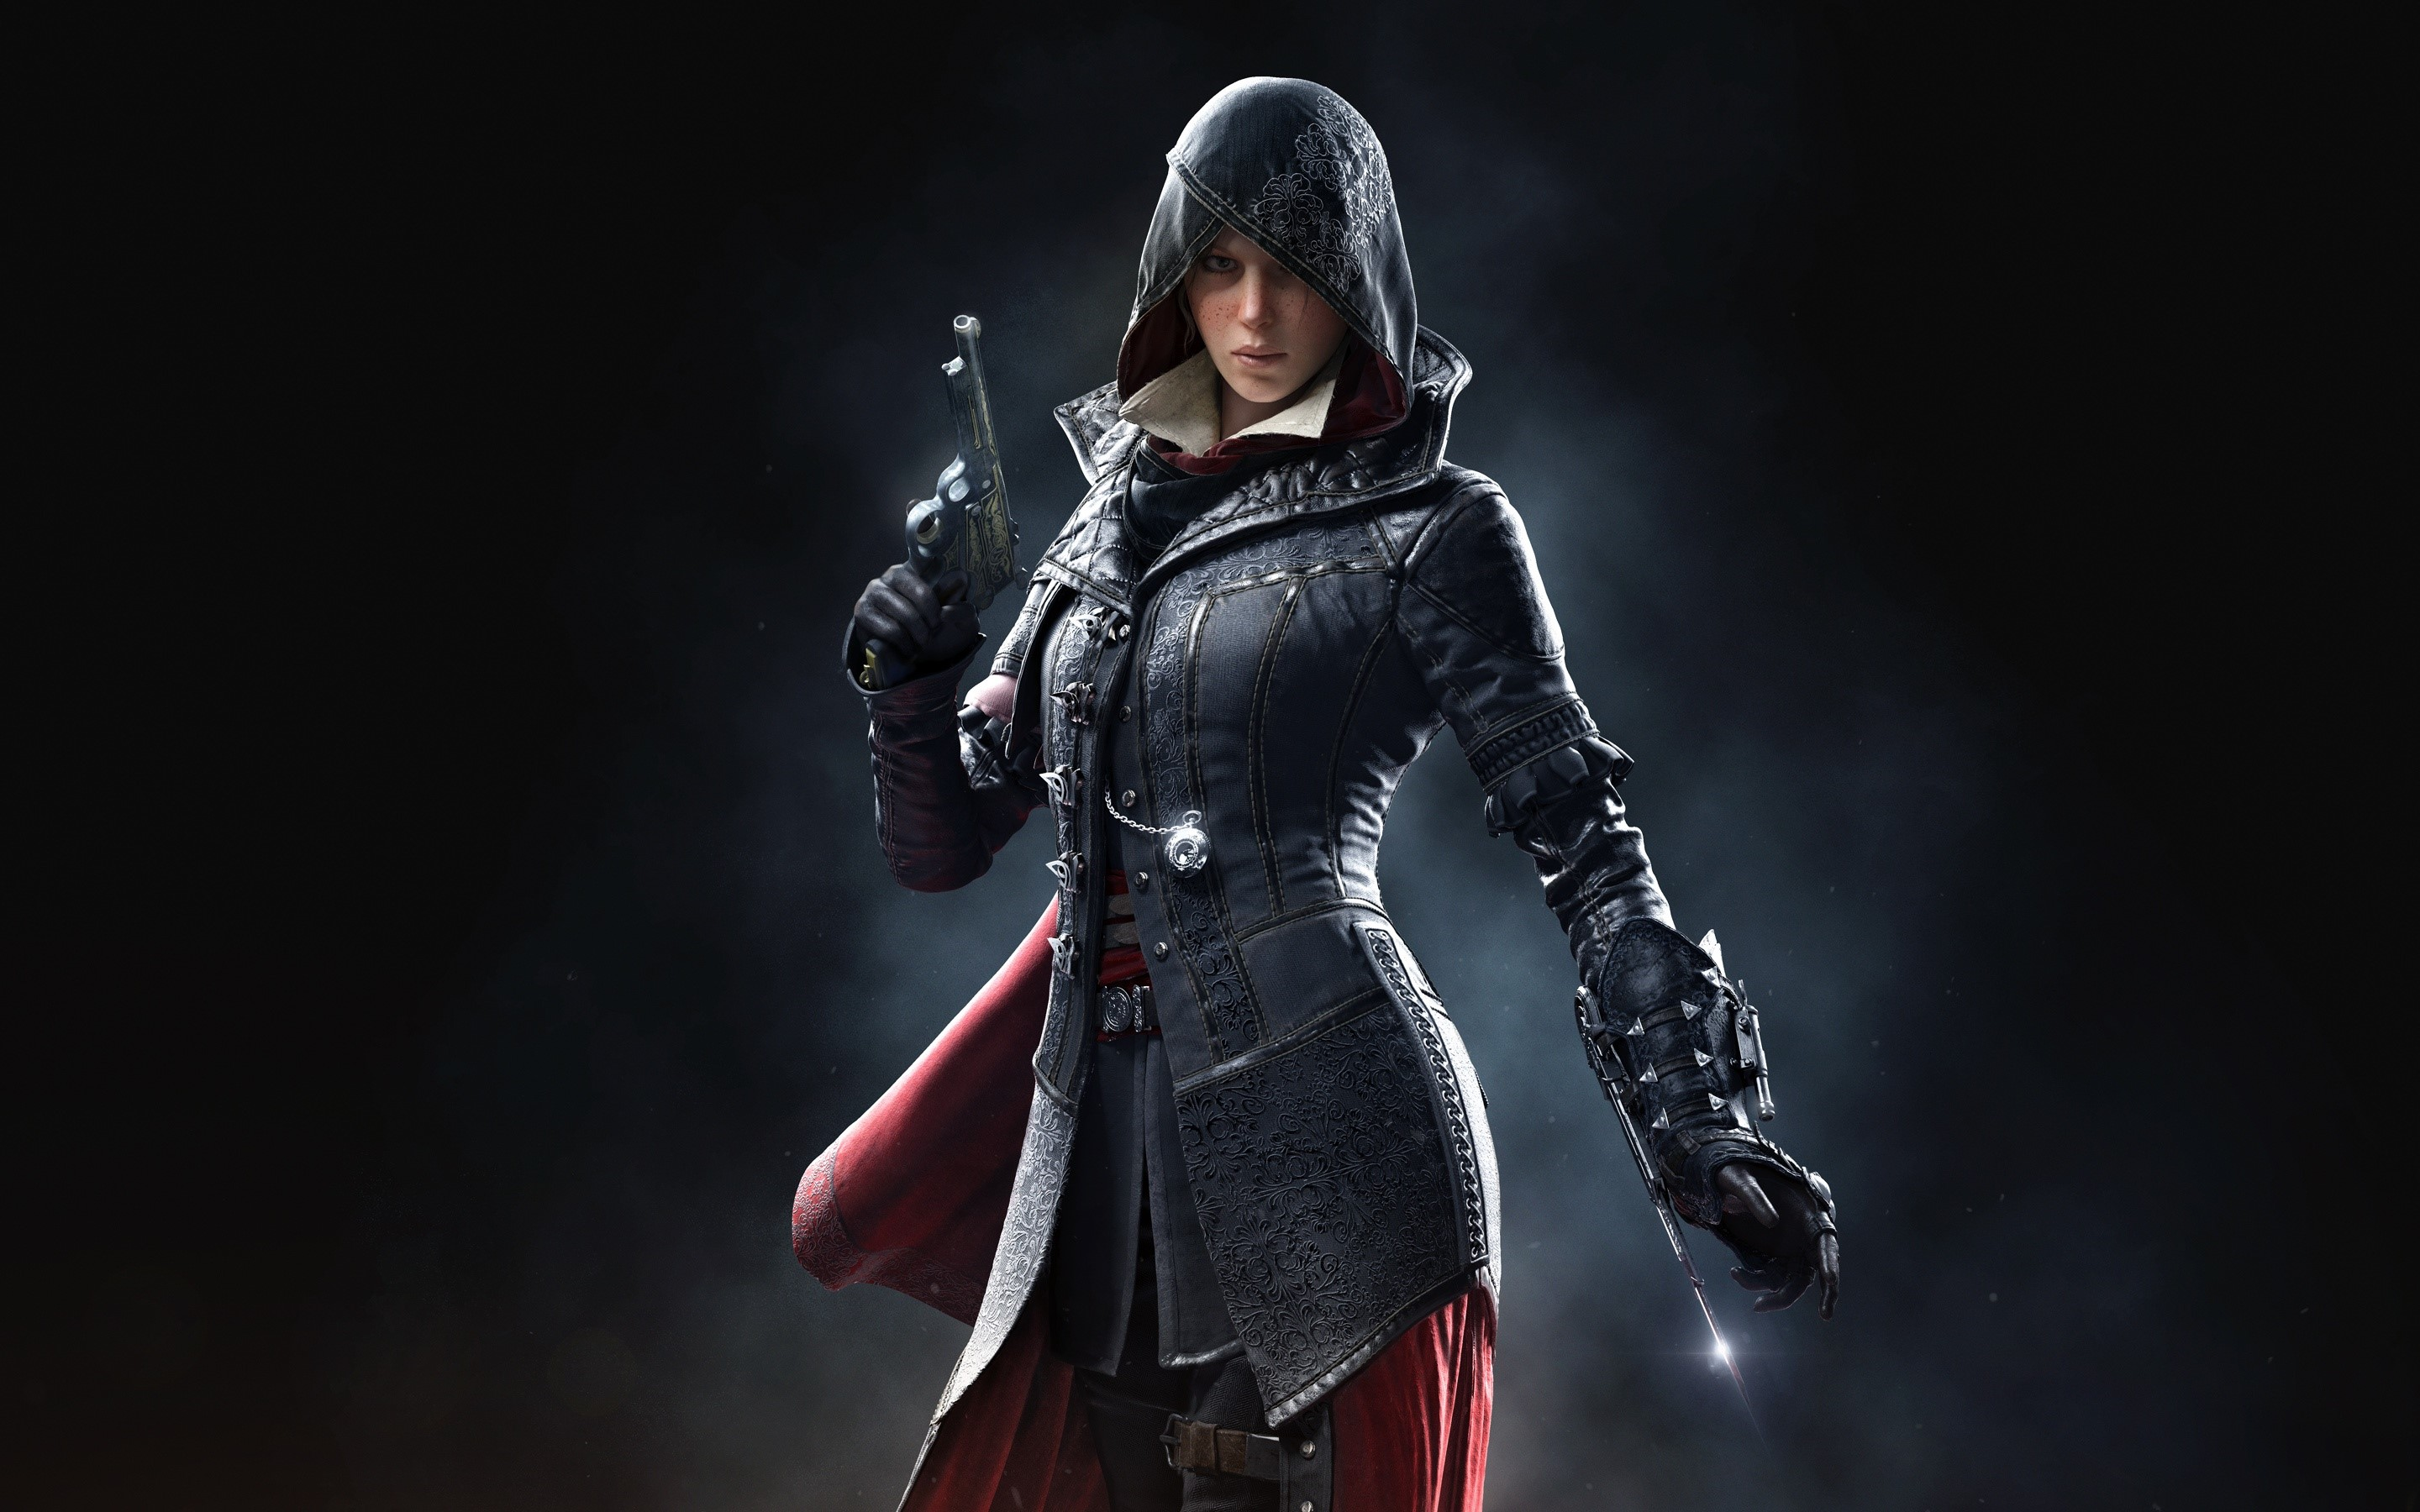 Evie Drye In Assasins Creed Syndicate Wallpaper Id 1834